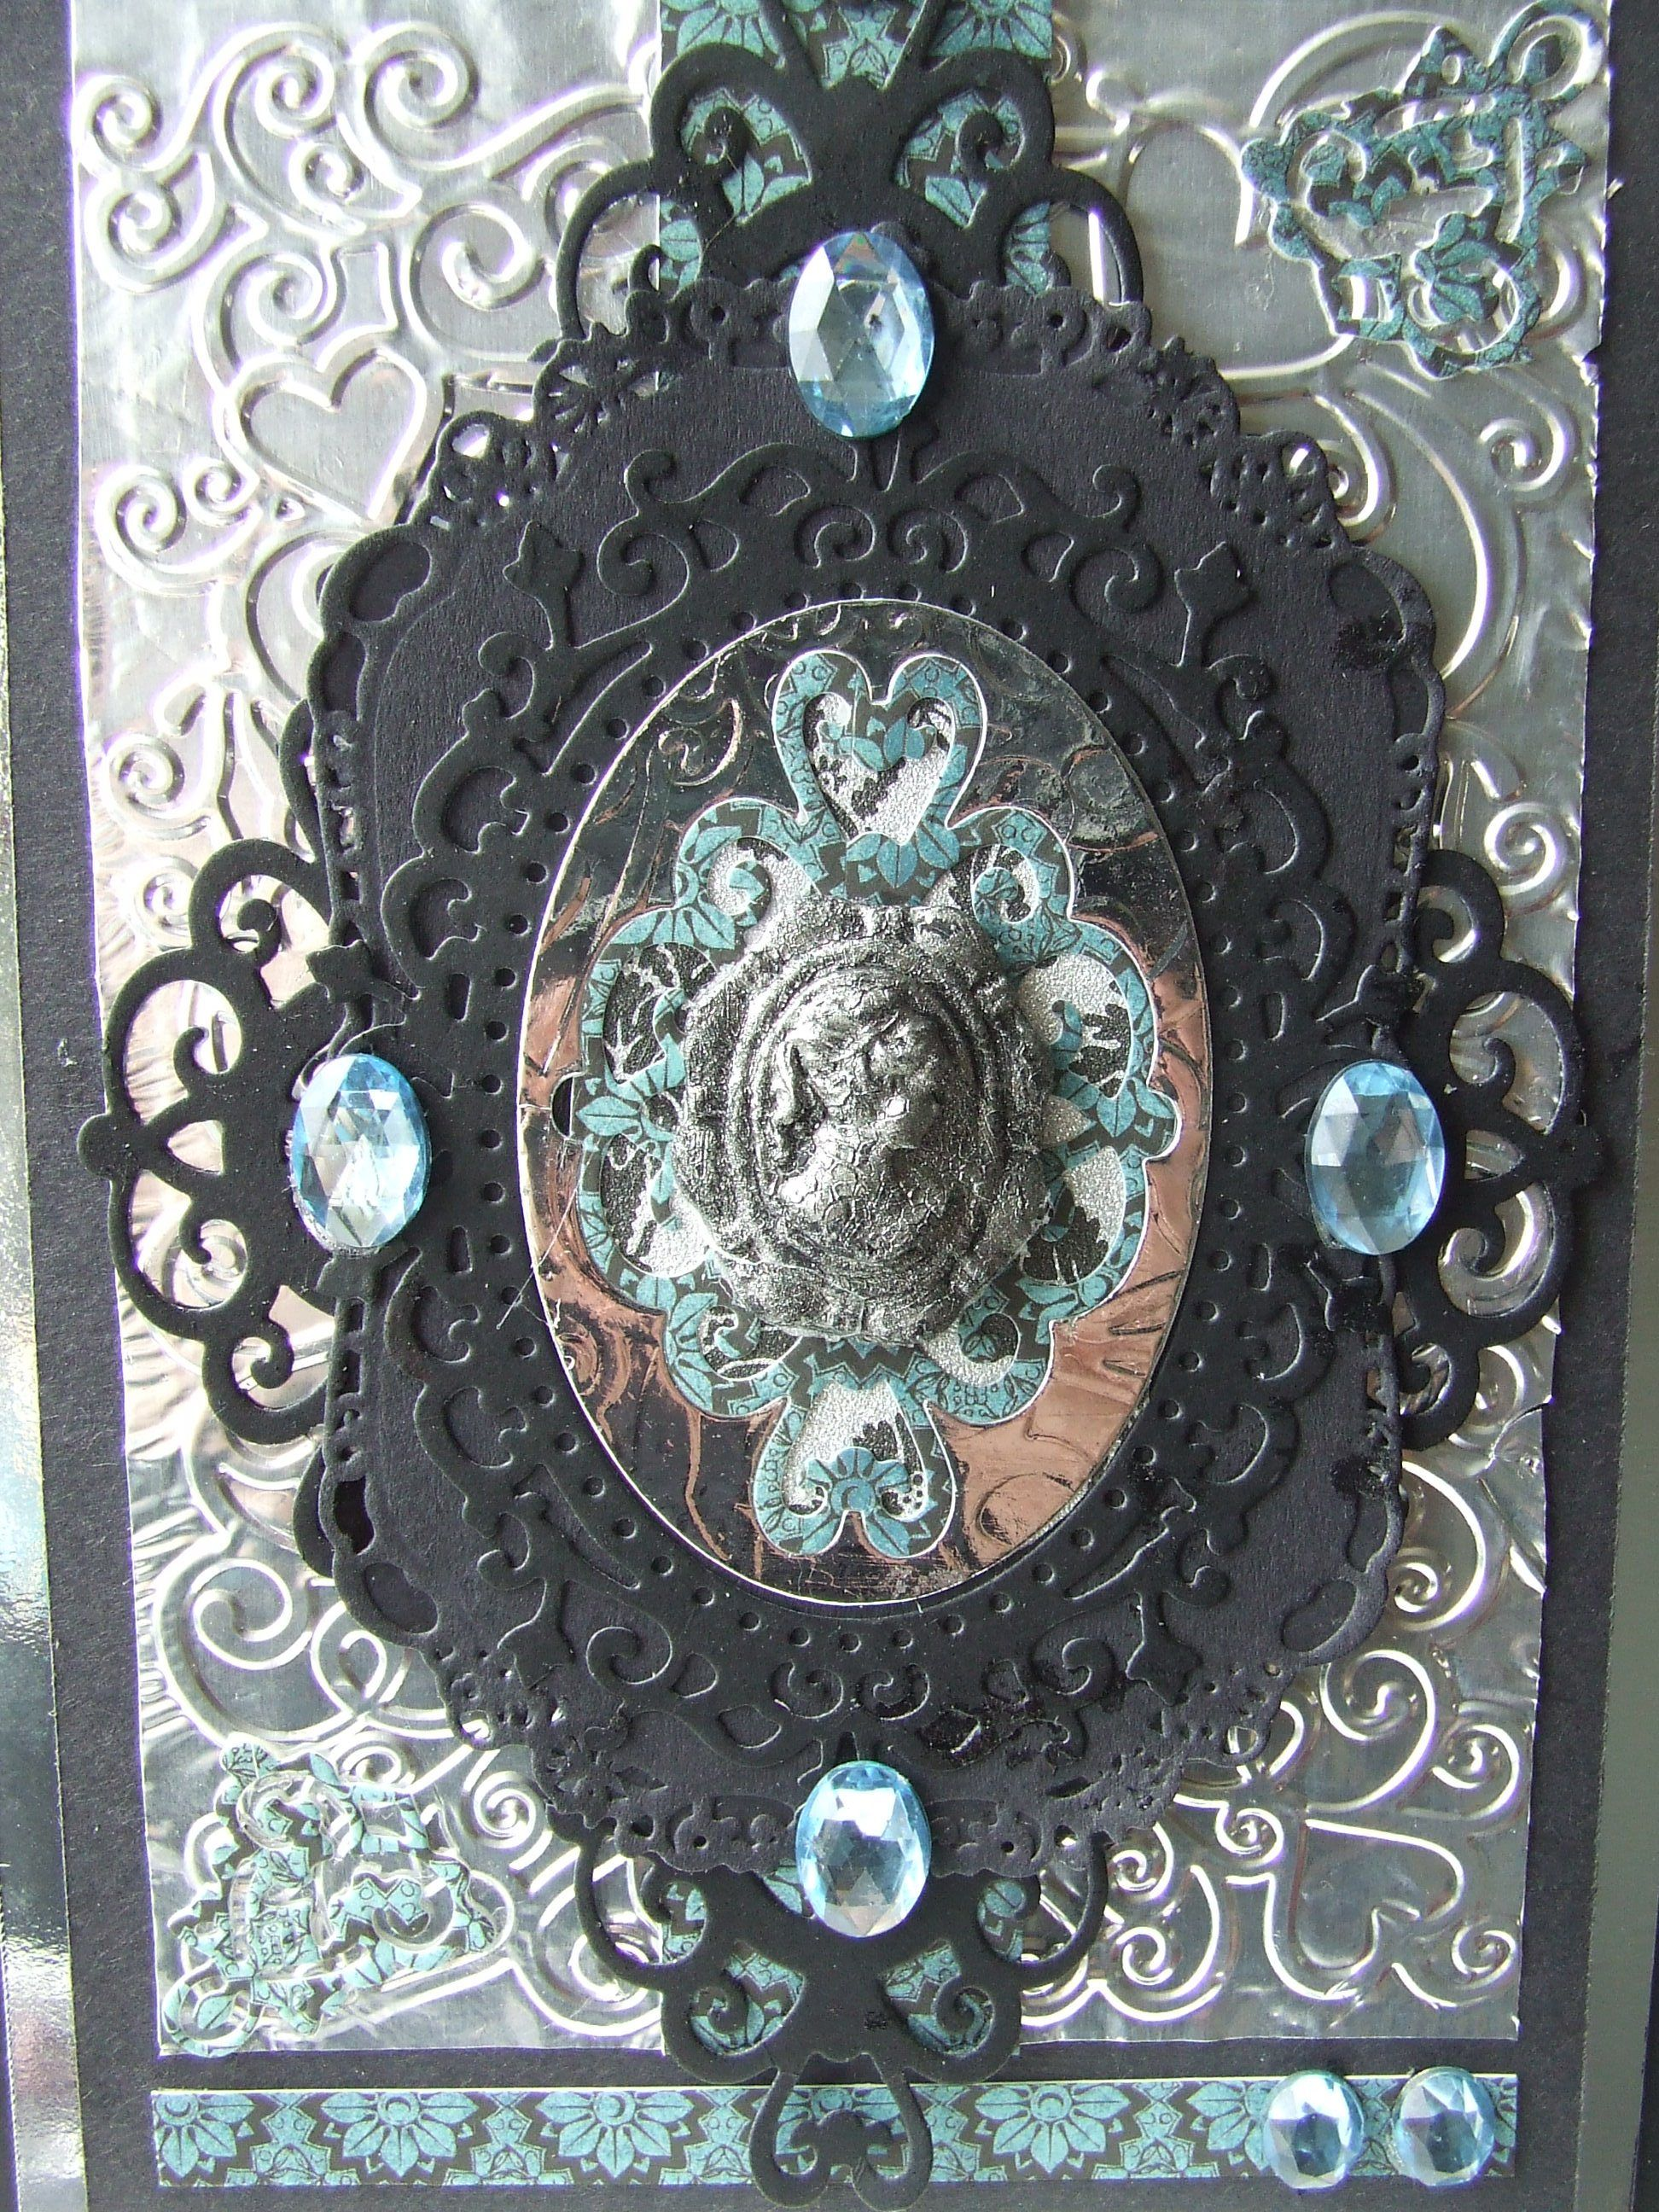 Antique Frame 3 In 1 Tattered Lace Die Available Exclusively From Hobbycraft Submitted By Chris Godfre Tattered Lace Cards Silhouette Cards Antique Frames